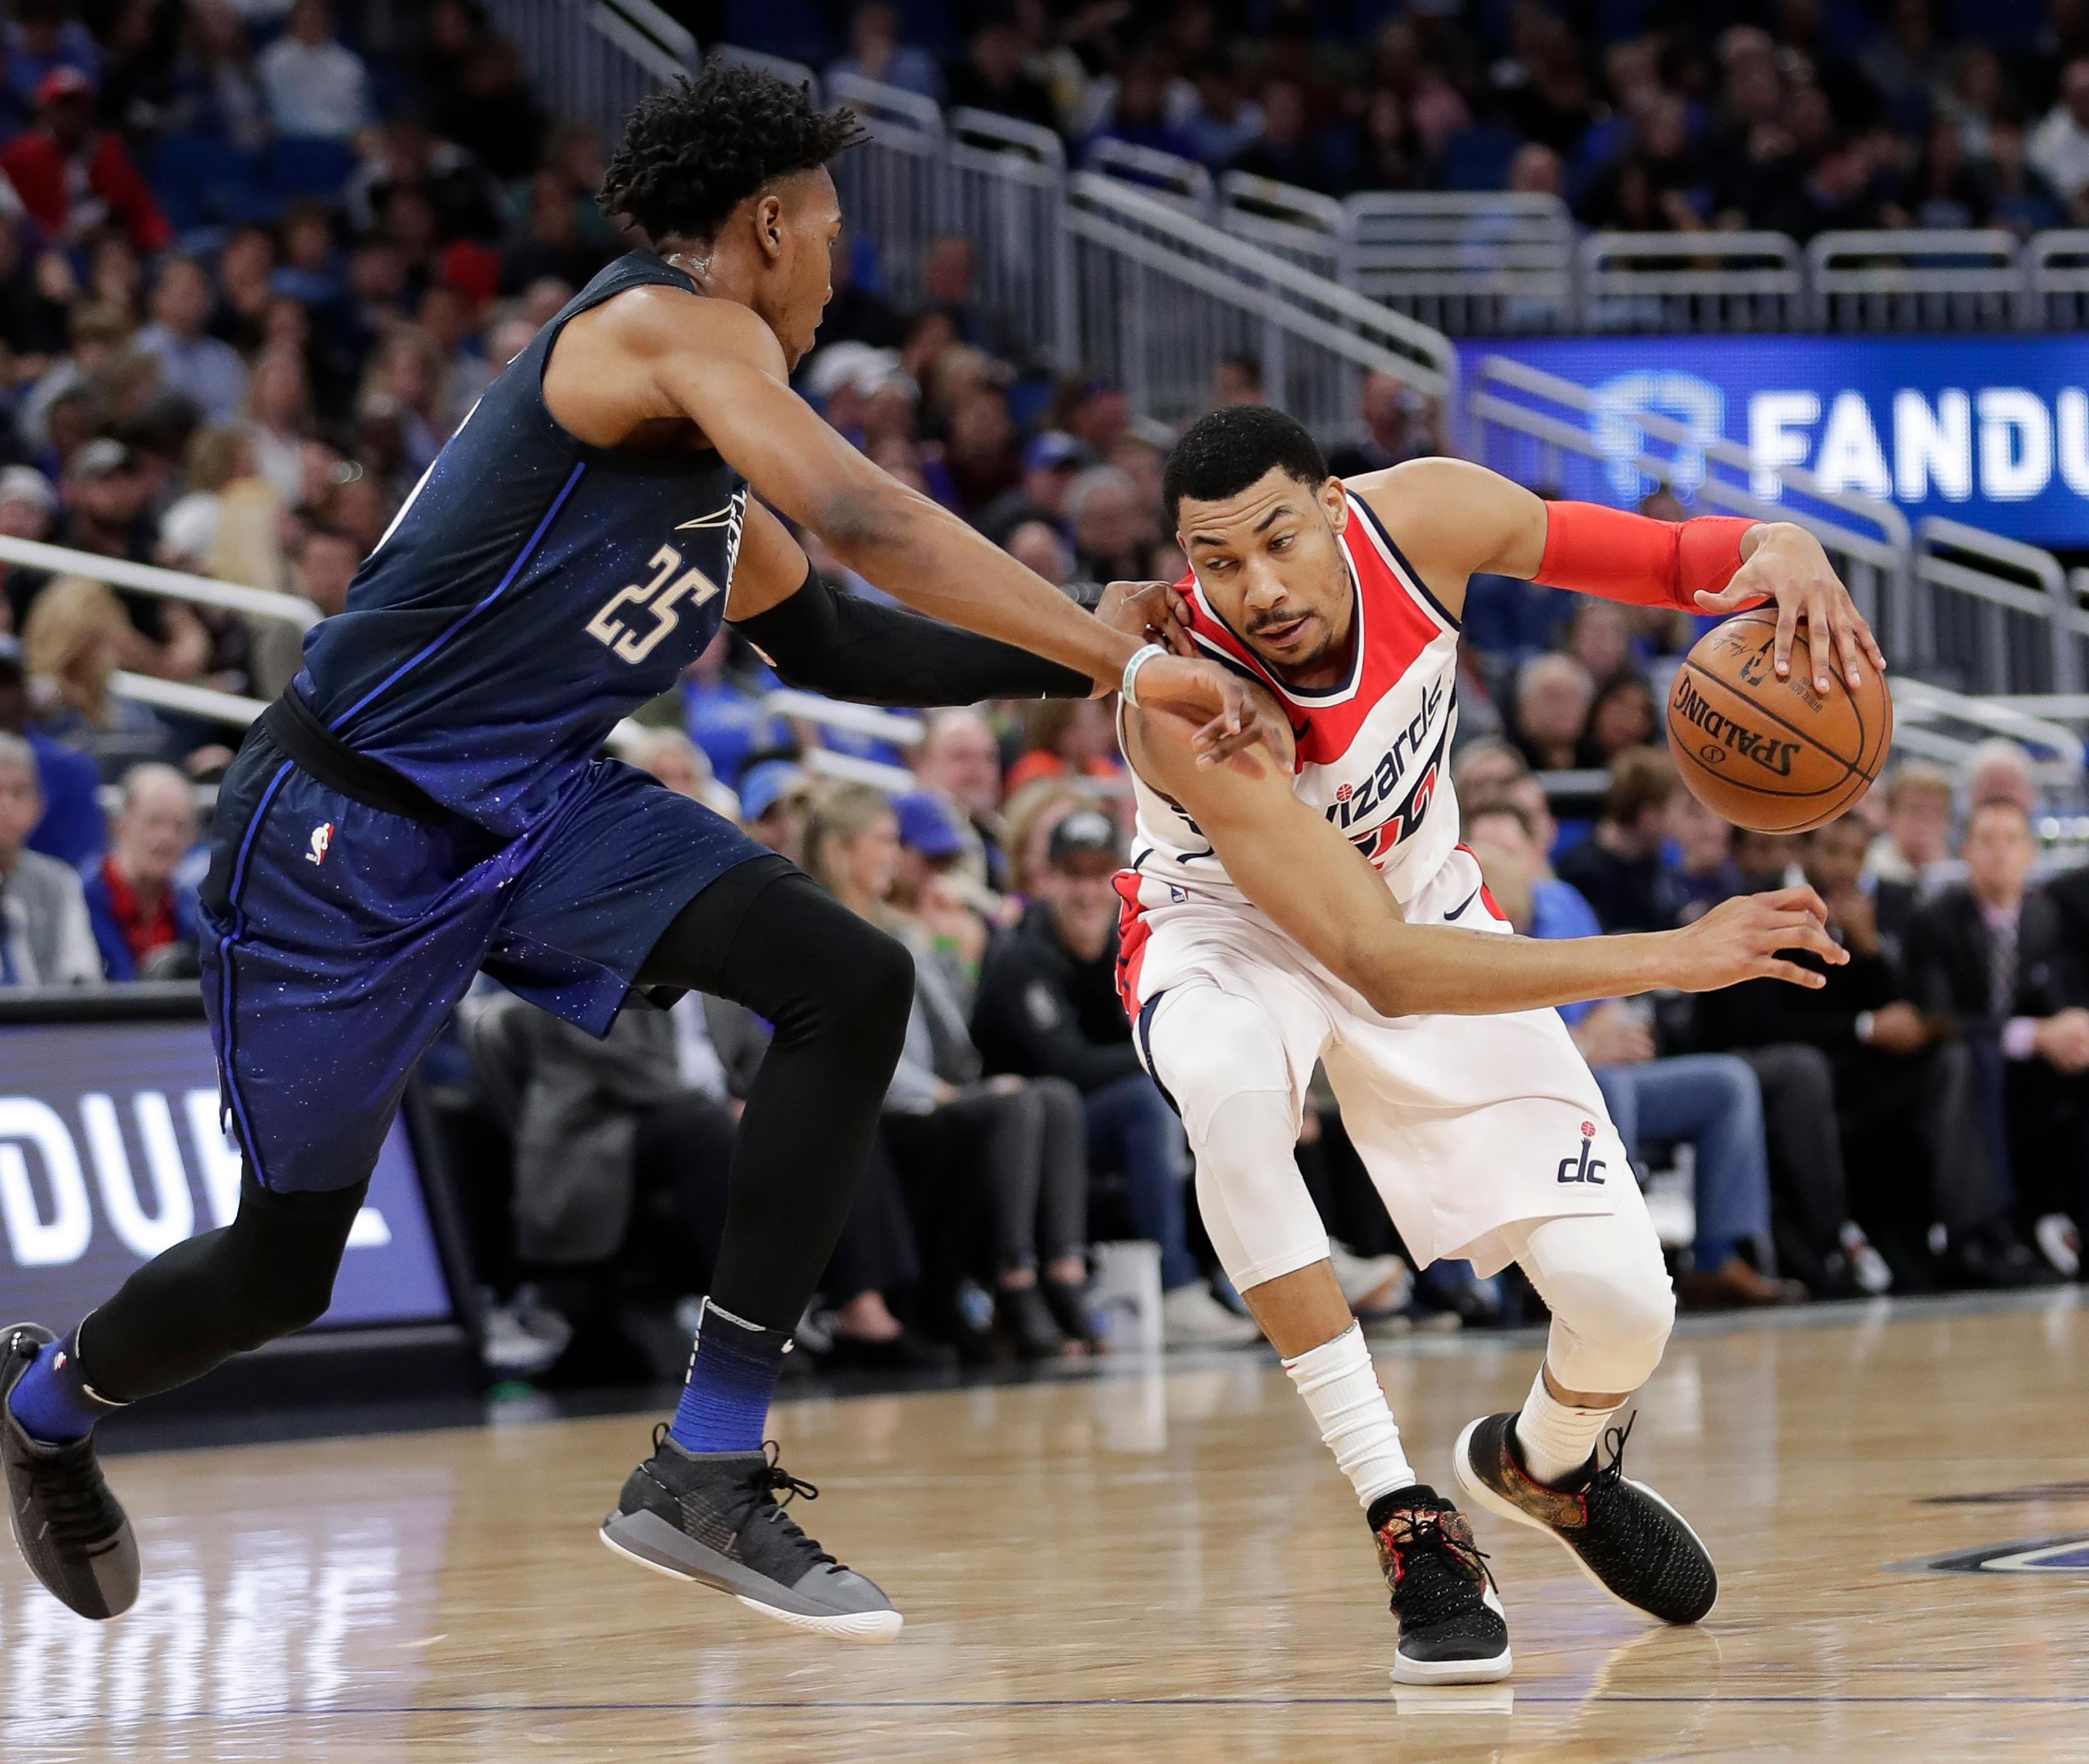 Washington Wizards' Otto Porter Jr., right, drives past Orlando Magic's Wesley Iwundu (25) during the first half of an NBA basketball game Saturday, Feb. 3, 2018, in Orlando, Fla. (AP Photo/John Raoux)